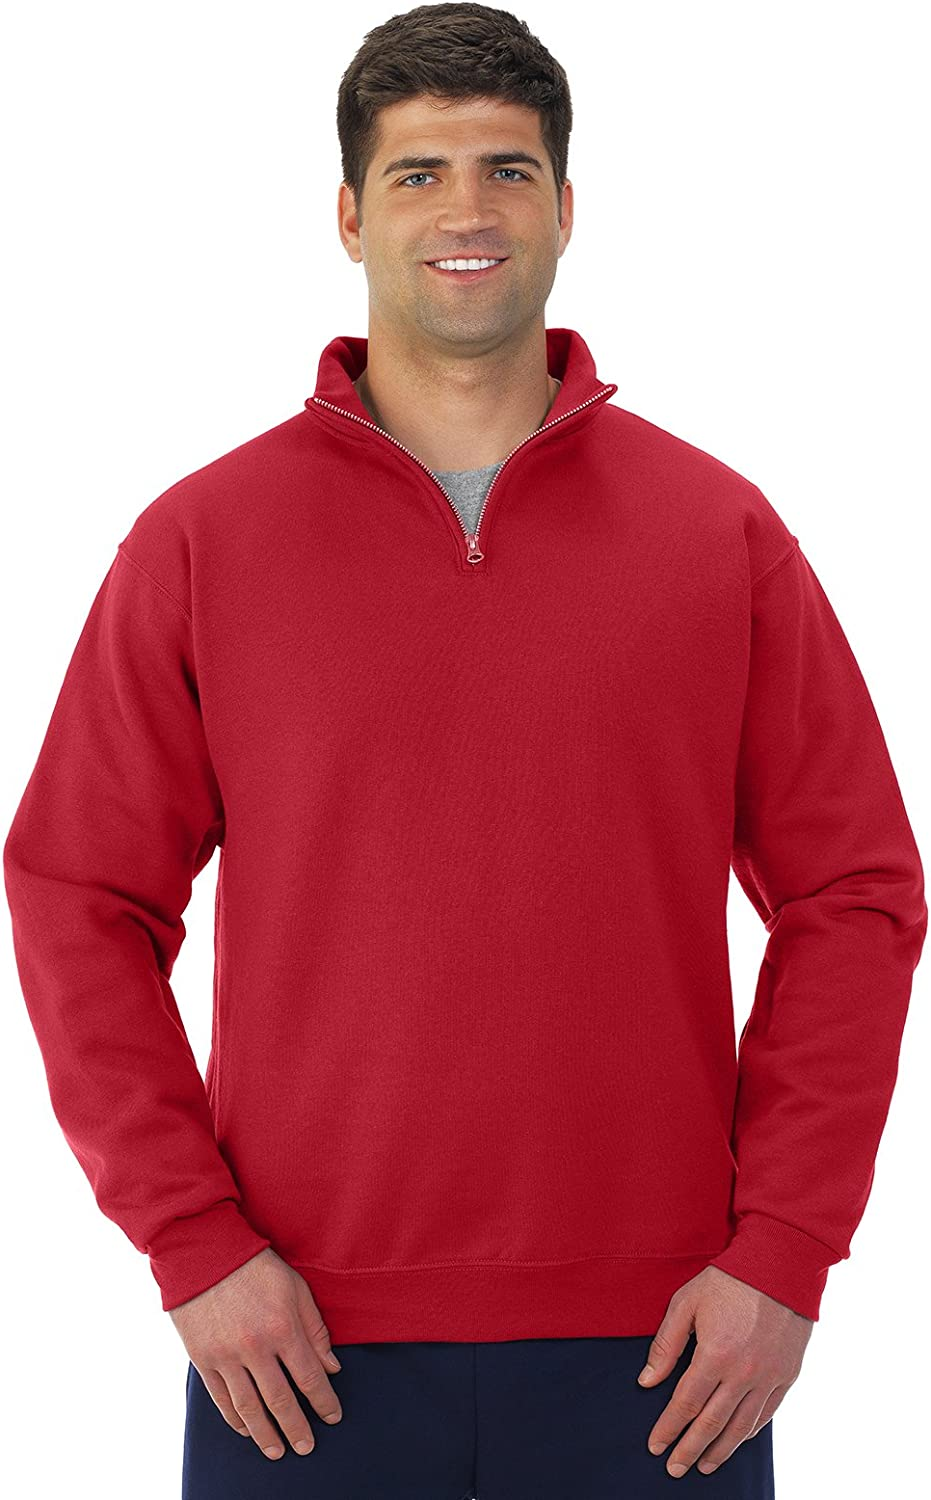 -TRUE RED-XL 995M 50//50 NuBlend Quarter-Zip Cadet Collar Sweatshirt Jerzees mens 8 oz